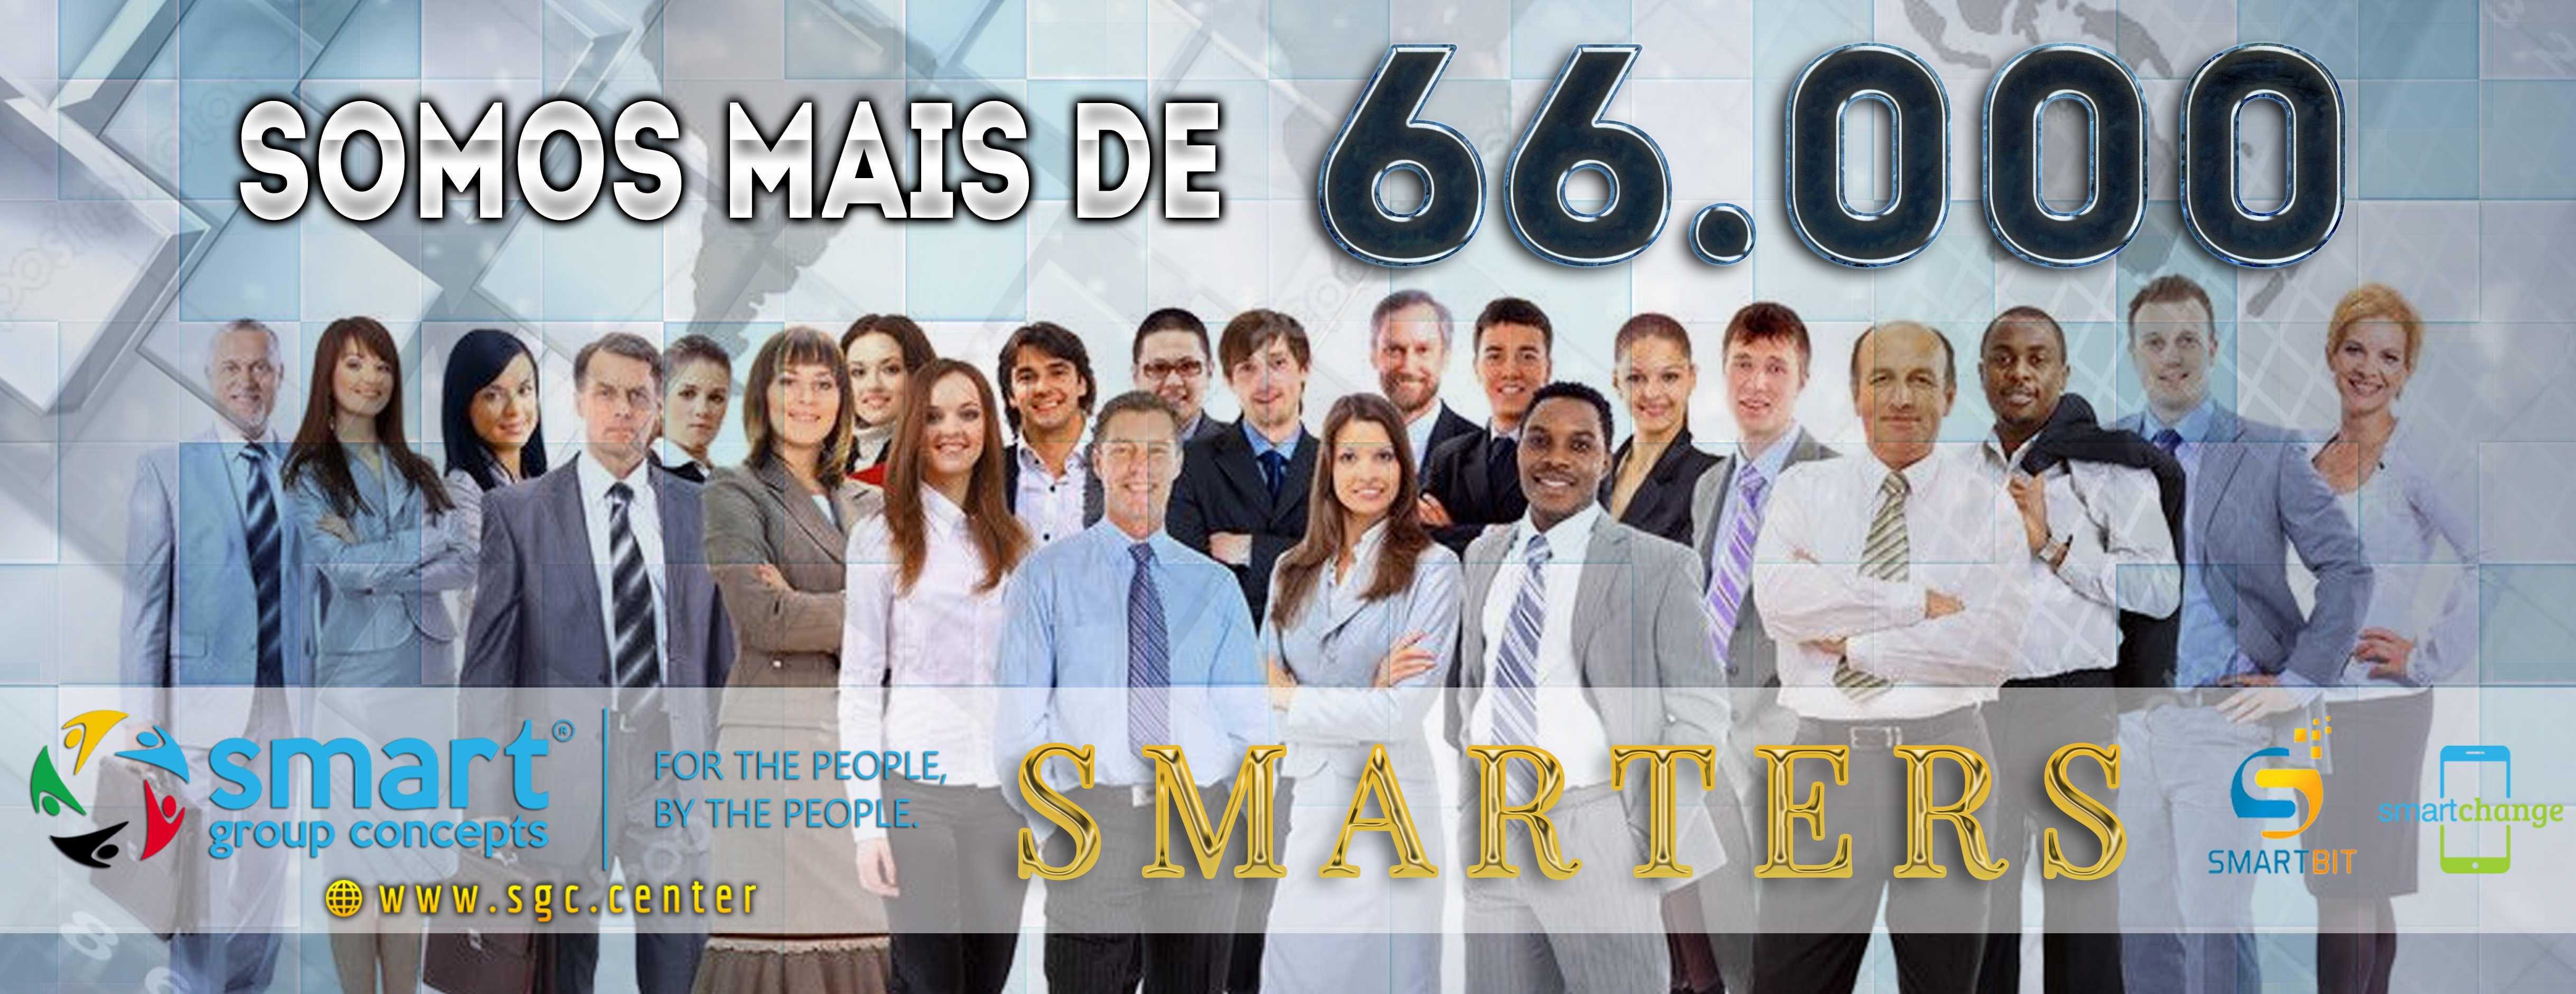 66 mil Smaters